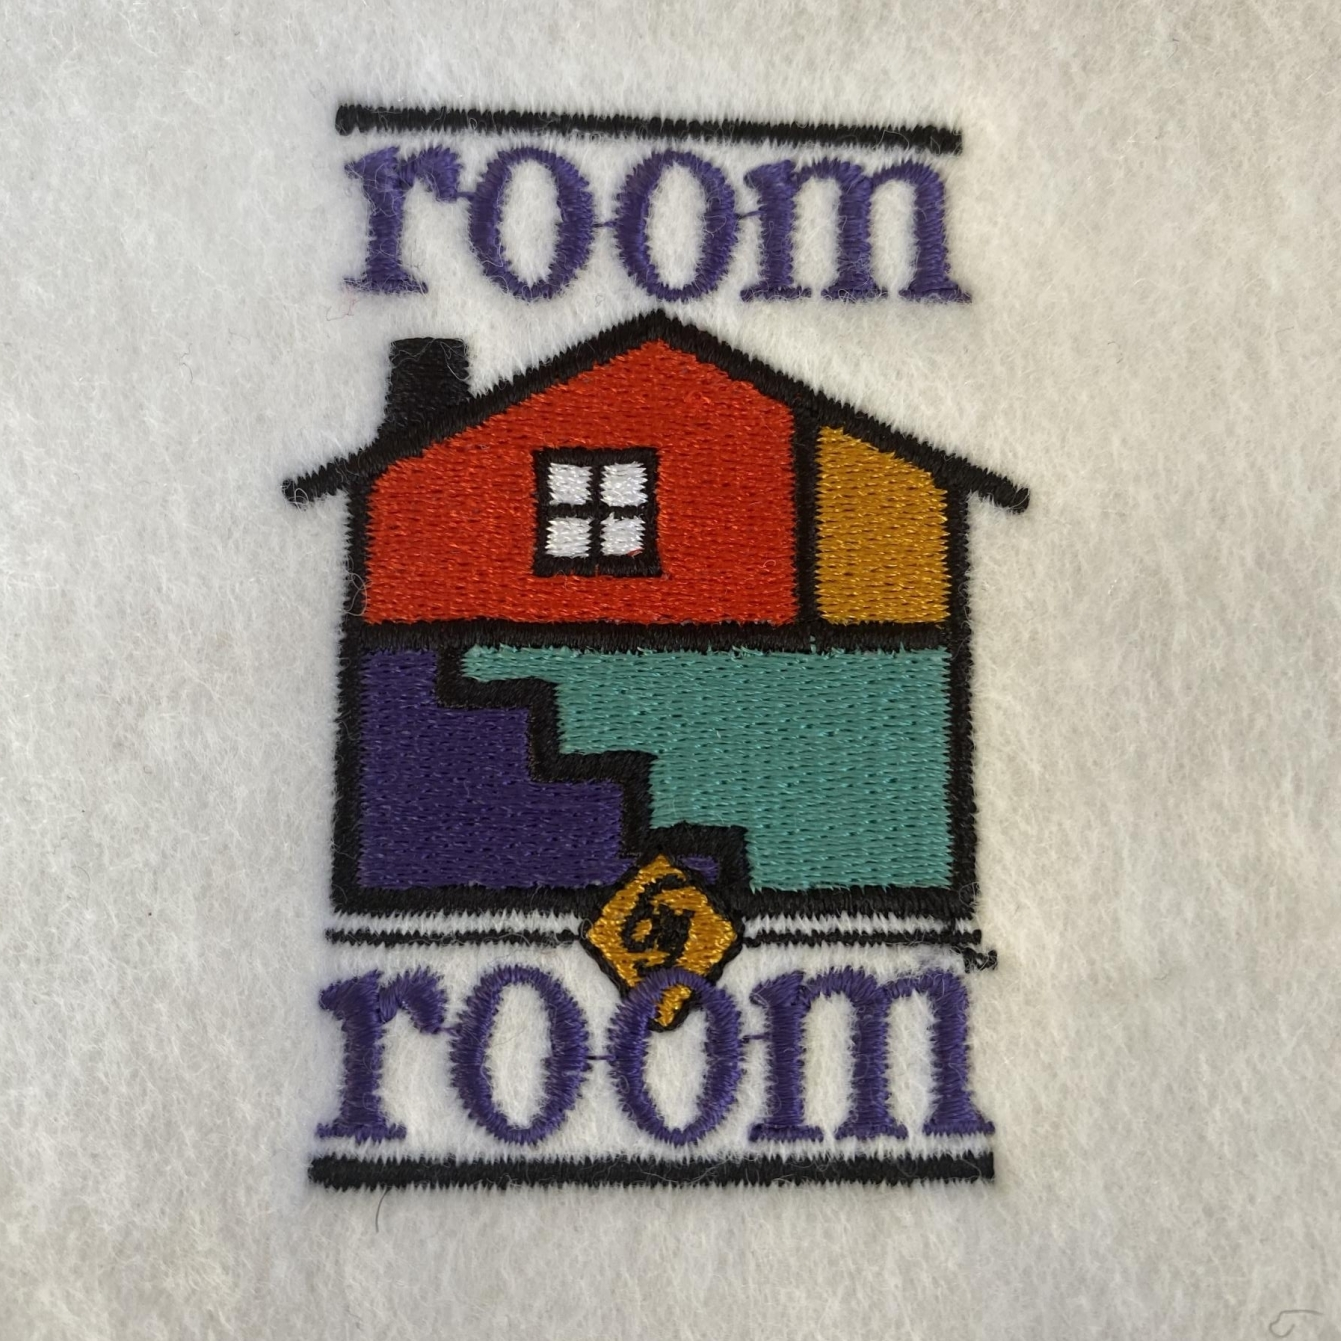 Room by Room Patch